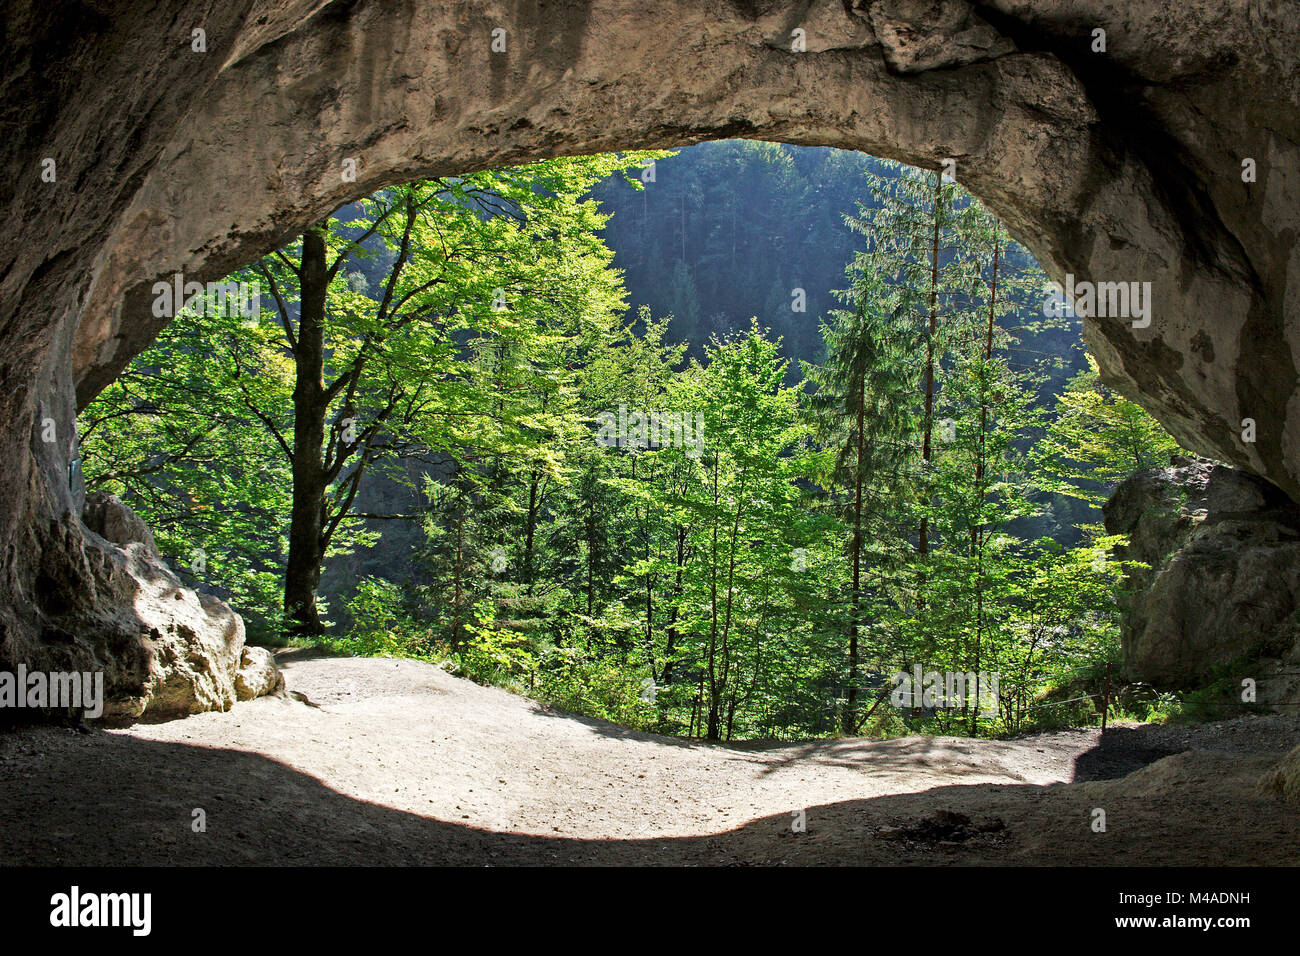 view out of the Tischofer Cave in the kaisertal valley in the kaisergebirge mountains in austria - Stock Image